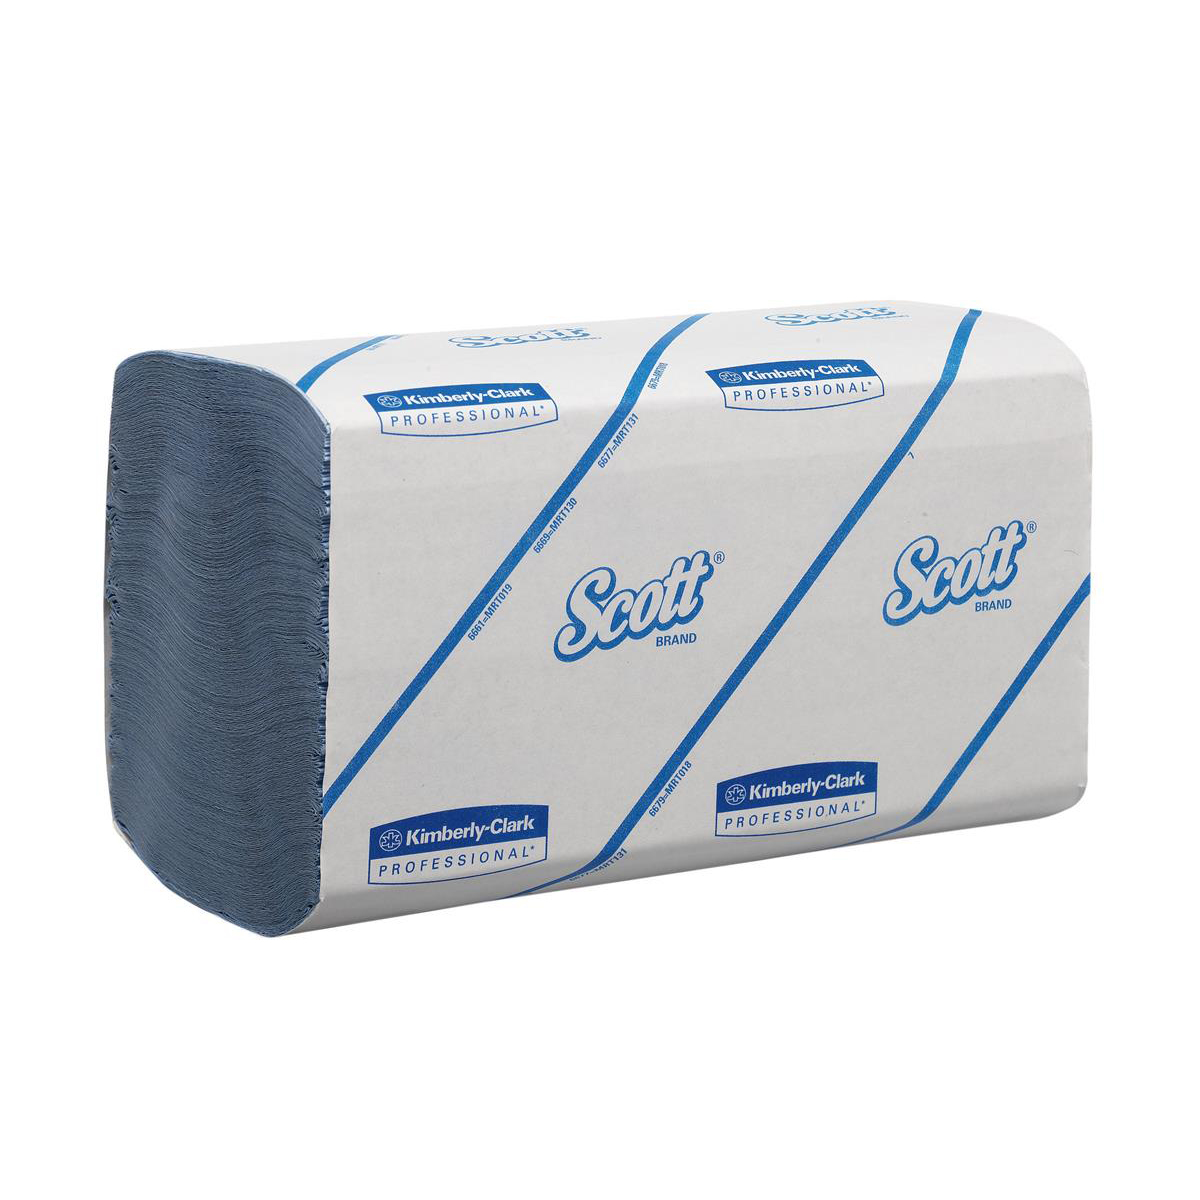 Scott Performance Hand Towels Blue 1 Ply 315x215mm 212 Towels per Sleeve Ref 6664 Pack 15 Sleeves